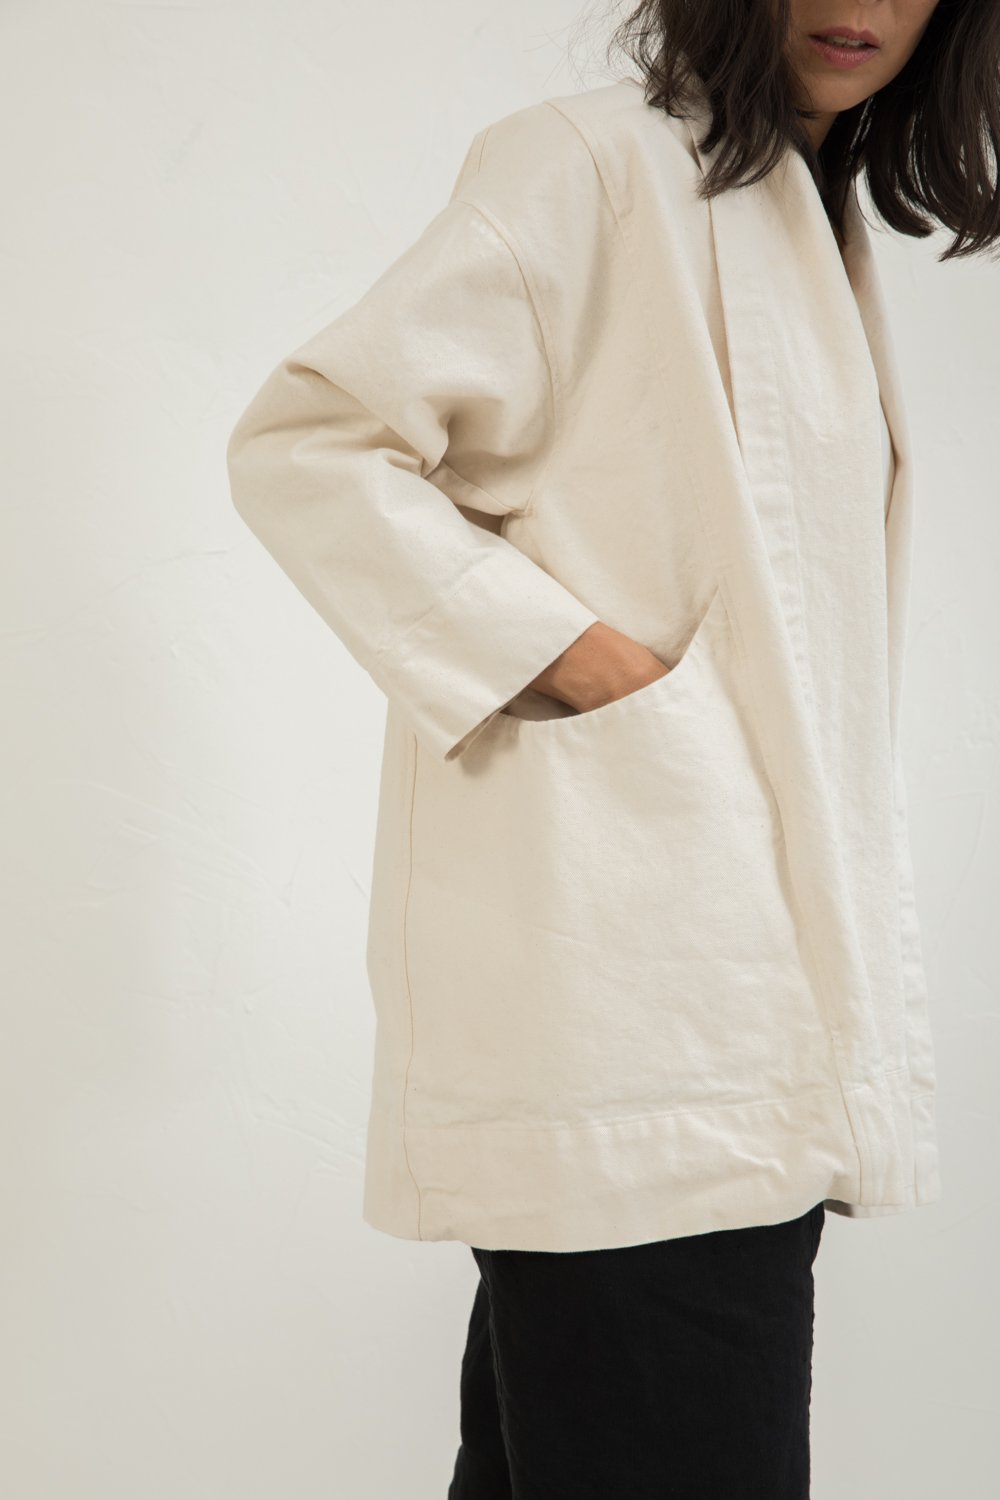 Clyde Jacket in Cotton Canvas Natural - Lisa-Small